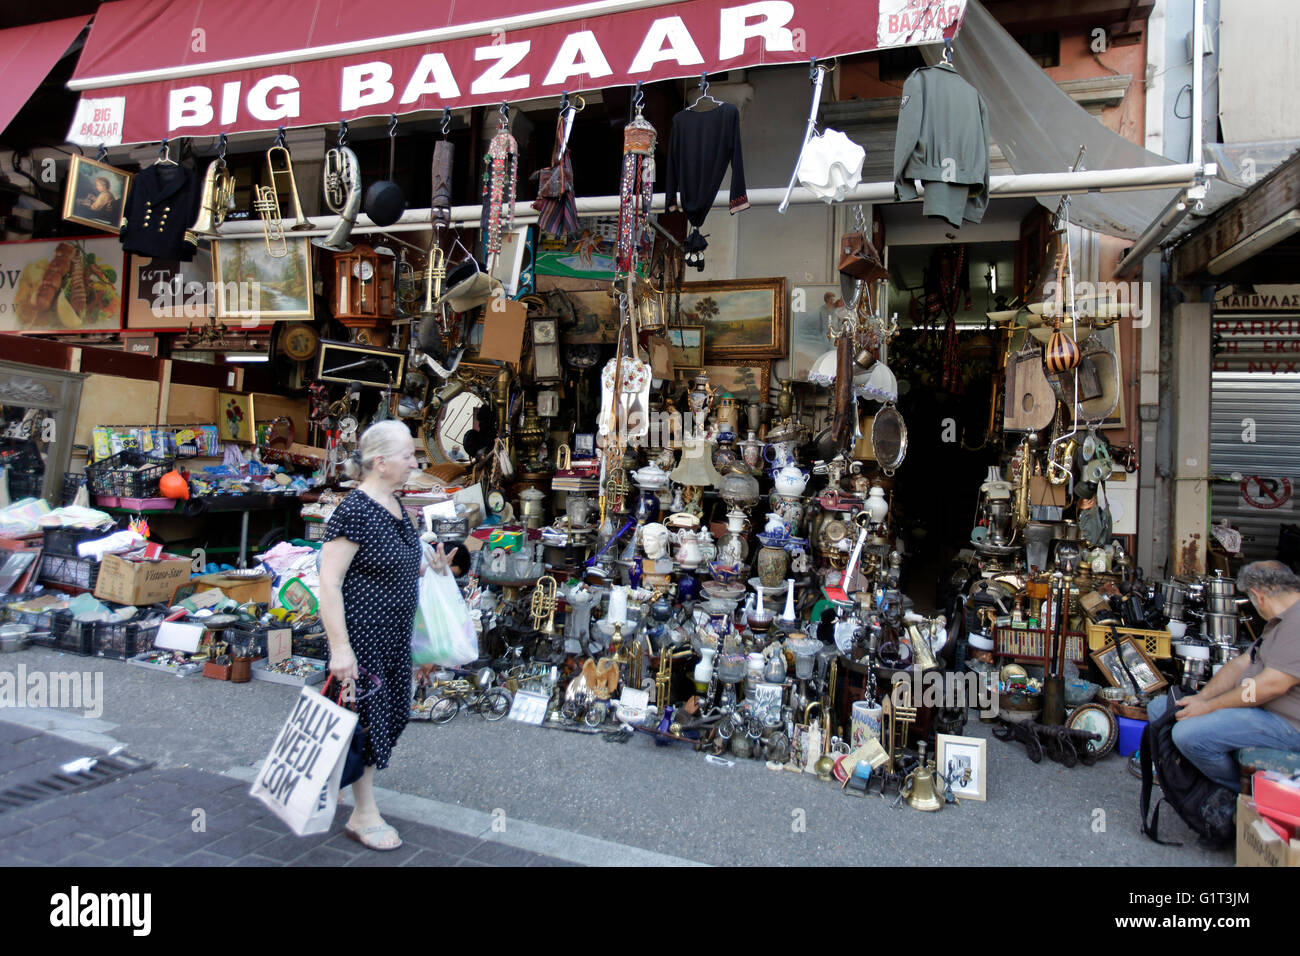 a woman walks past the big bazaar shop, in central athens , greece, selling Bric-à-brac, antiques and junk - Stock Image